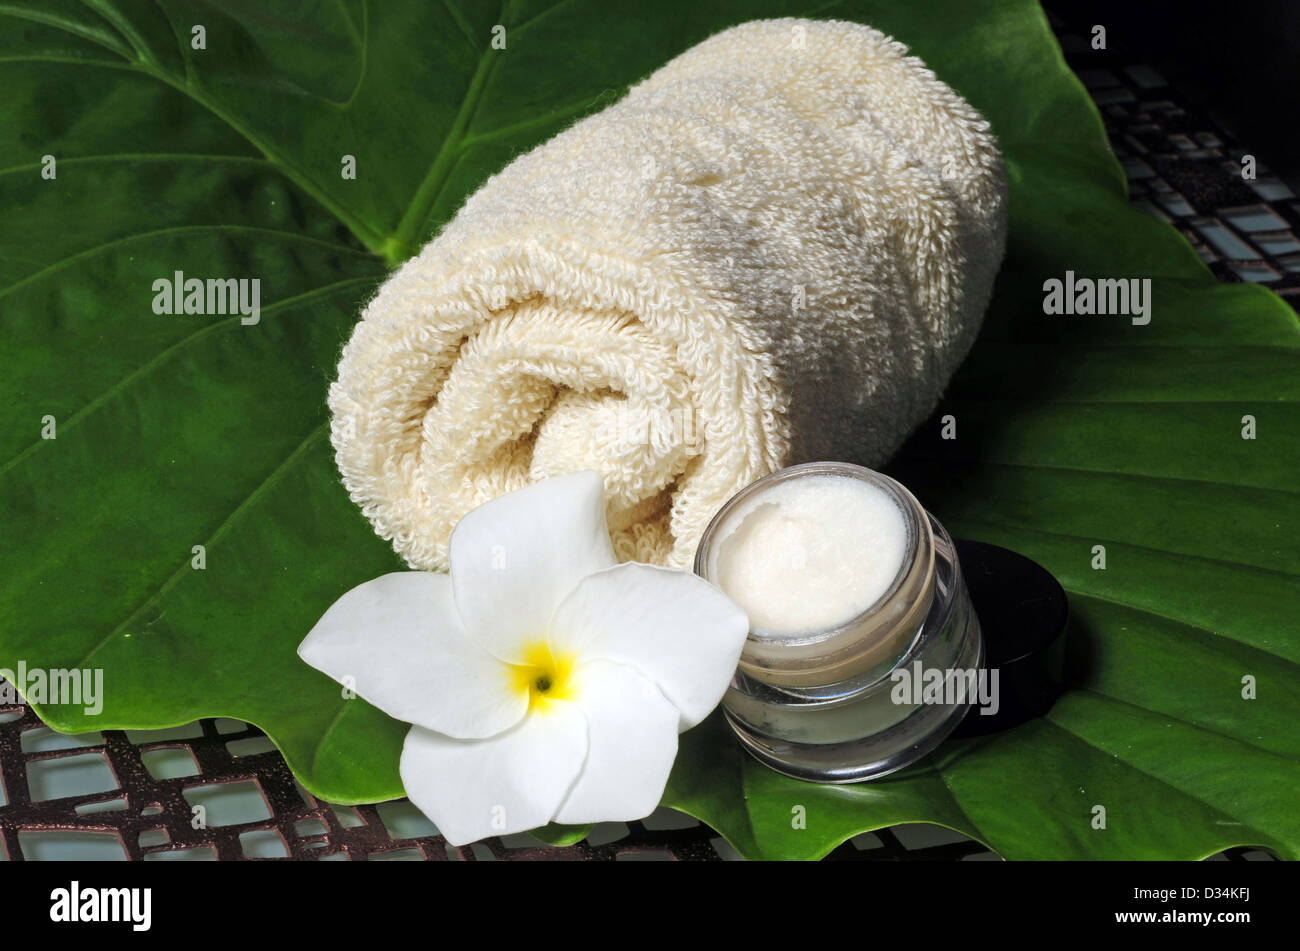 Moisturizer and a washcloth with a flower at a spa - Stock Image